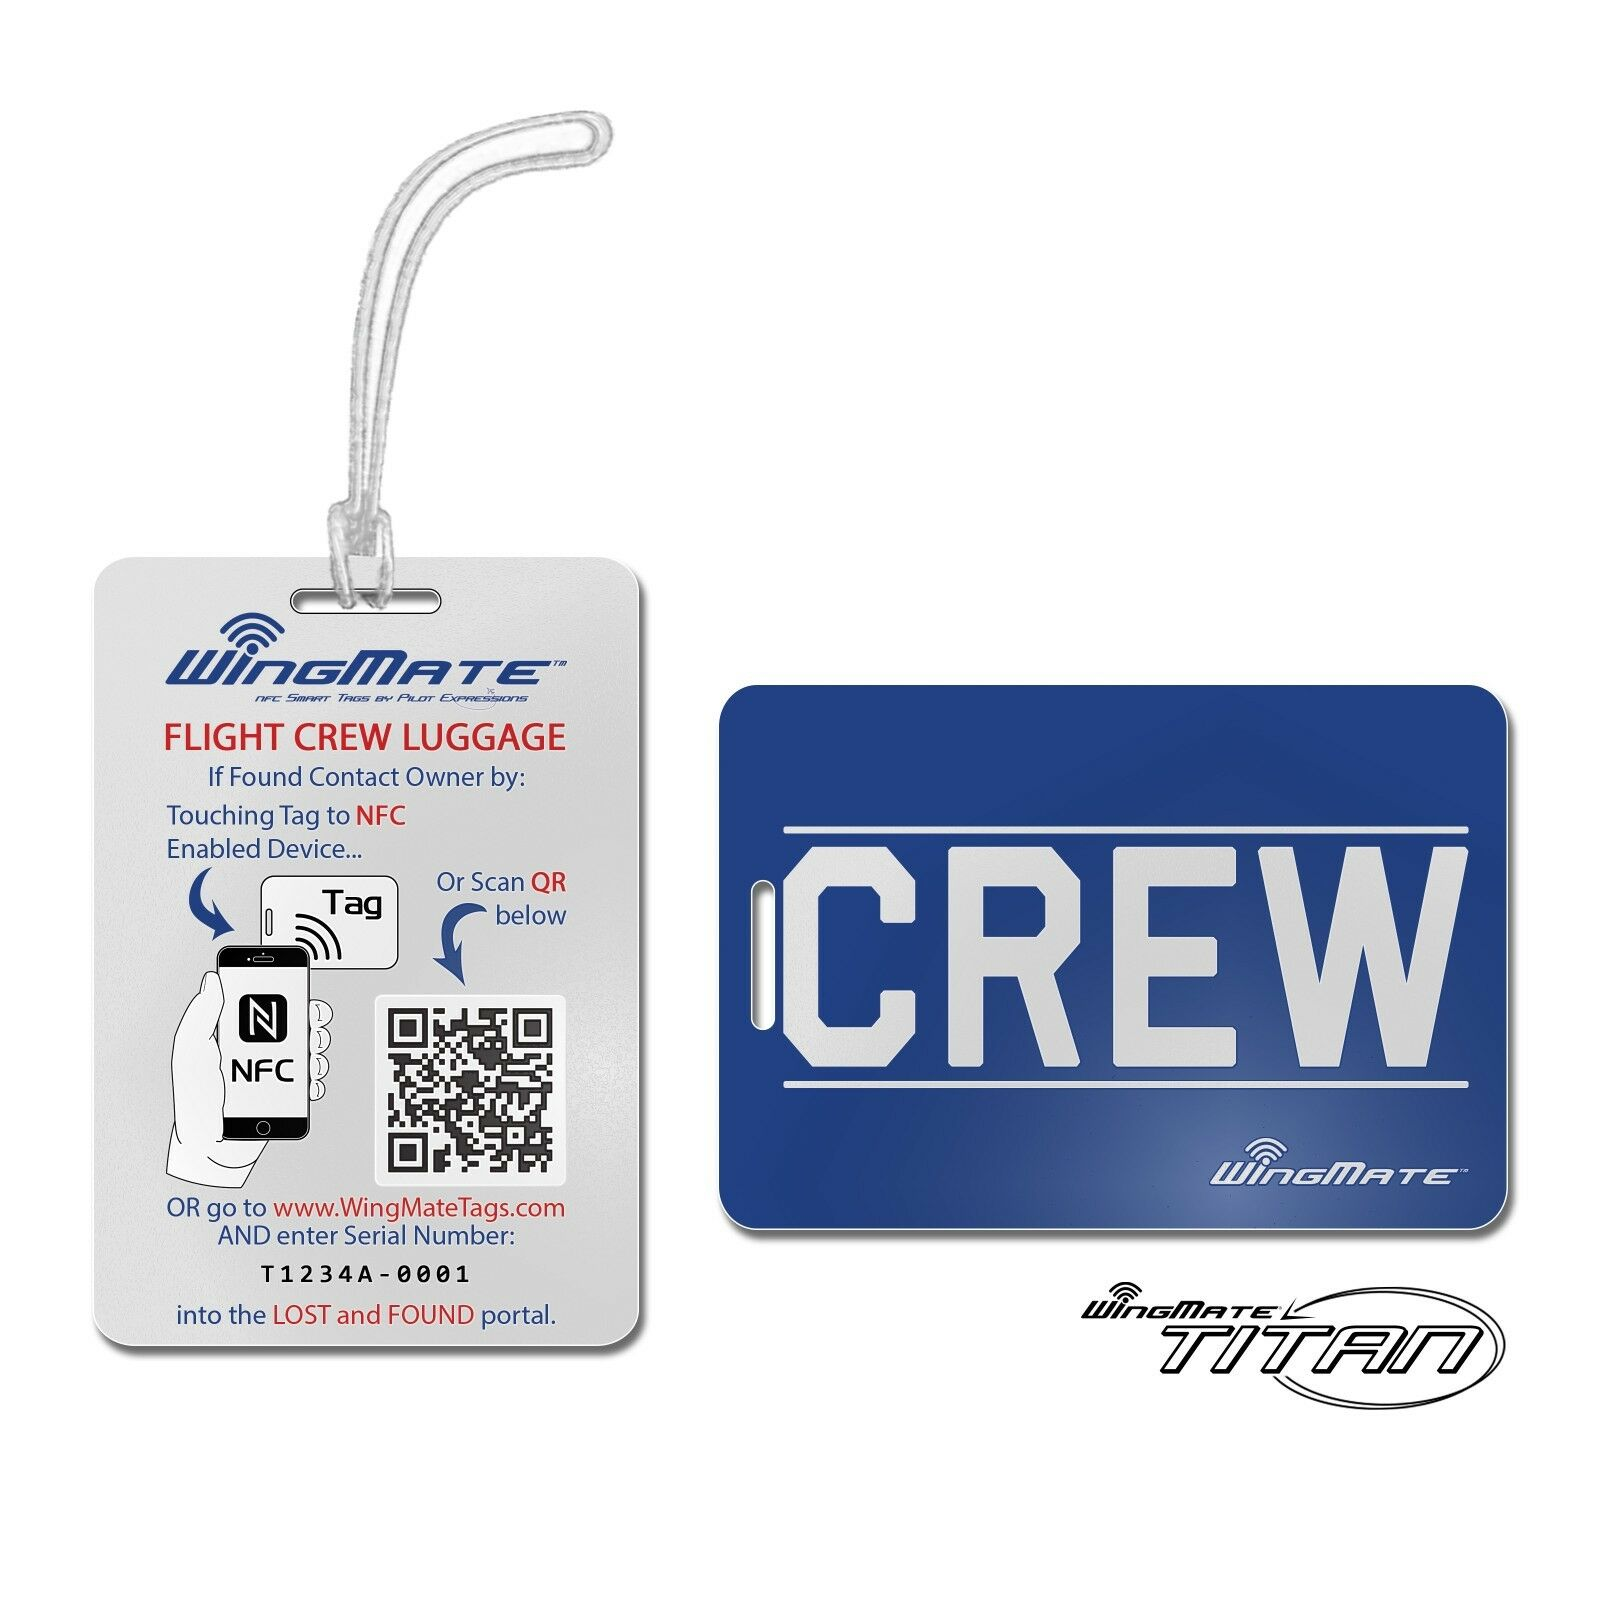 Passive Tracking Smart CREW Luggage Tag by WingMate! Flight